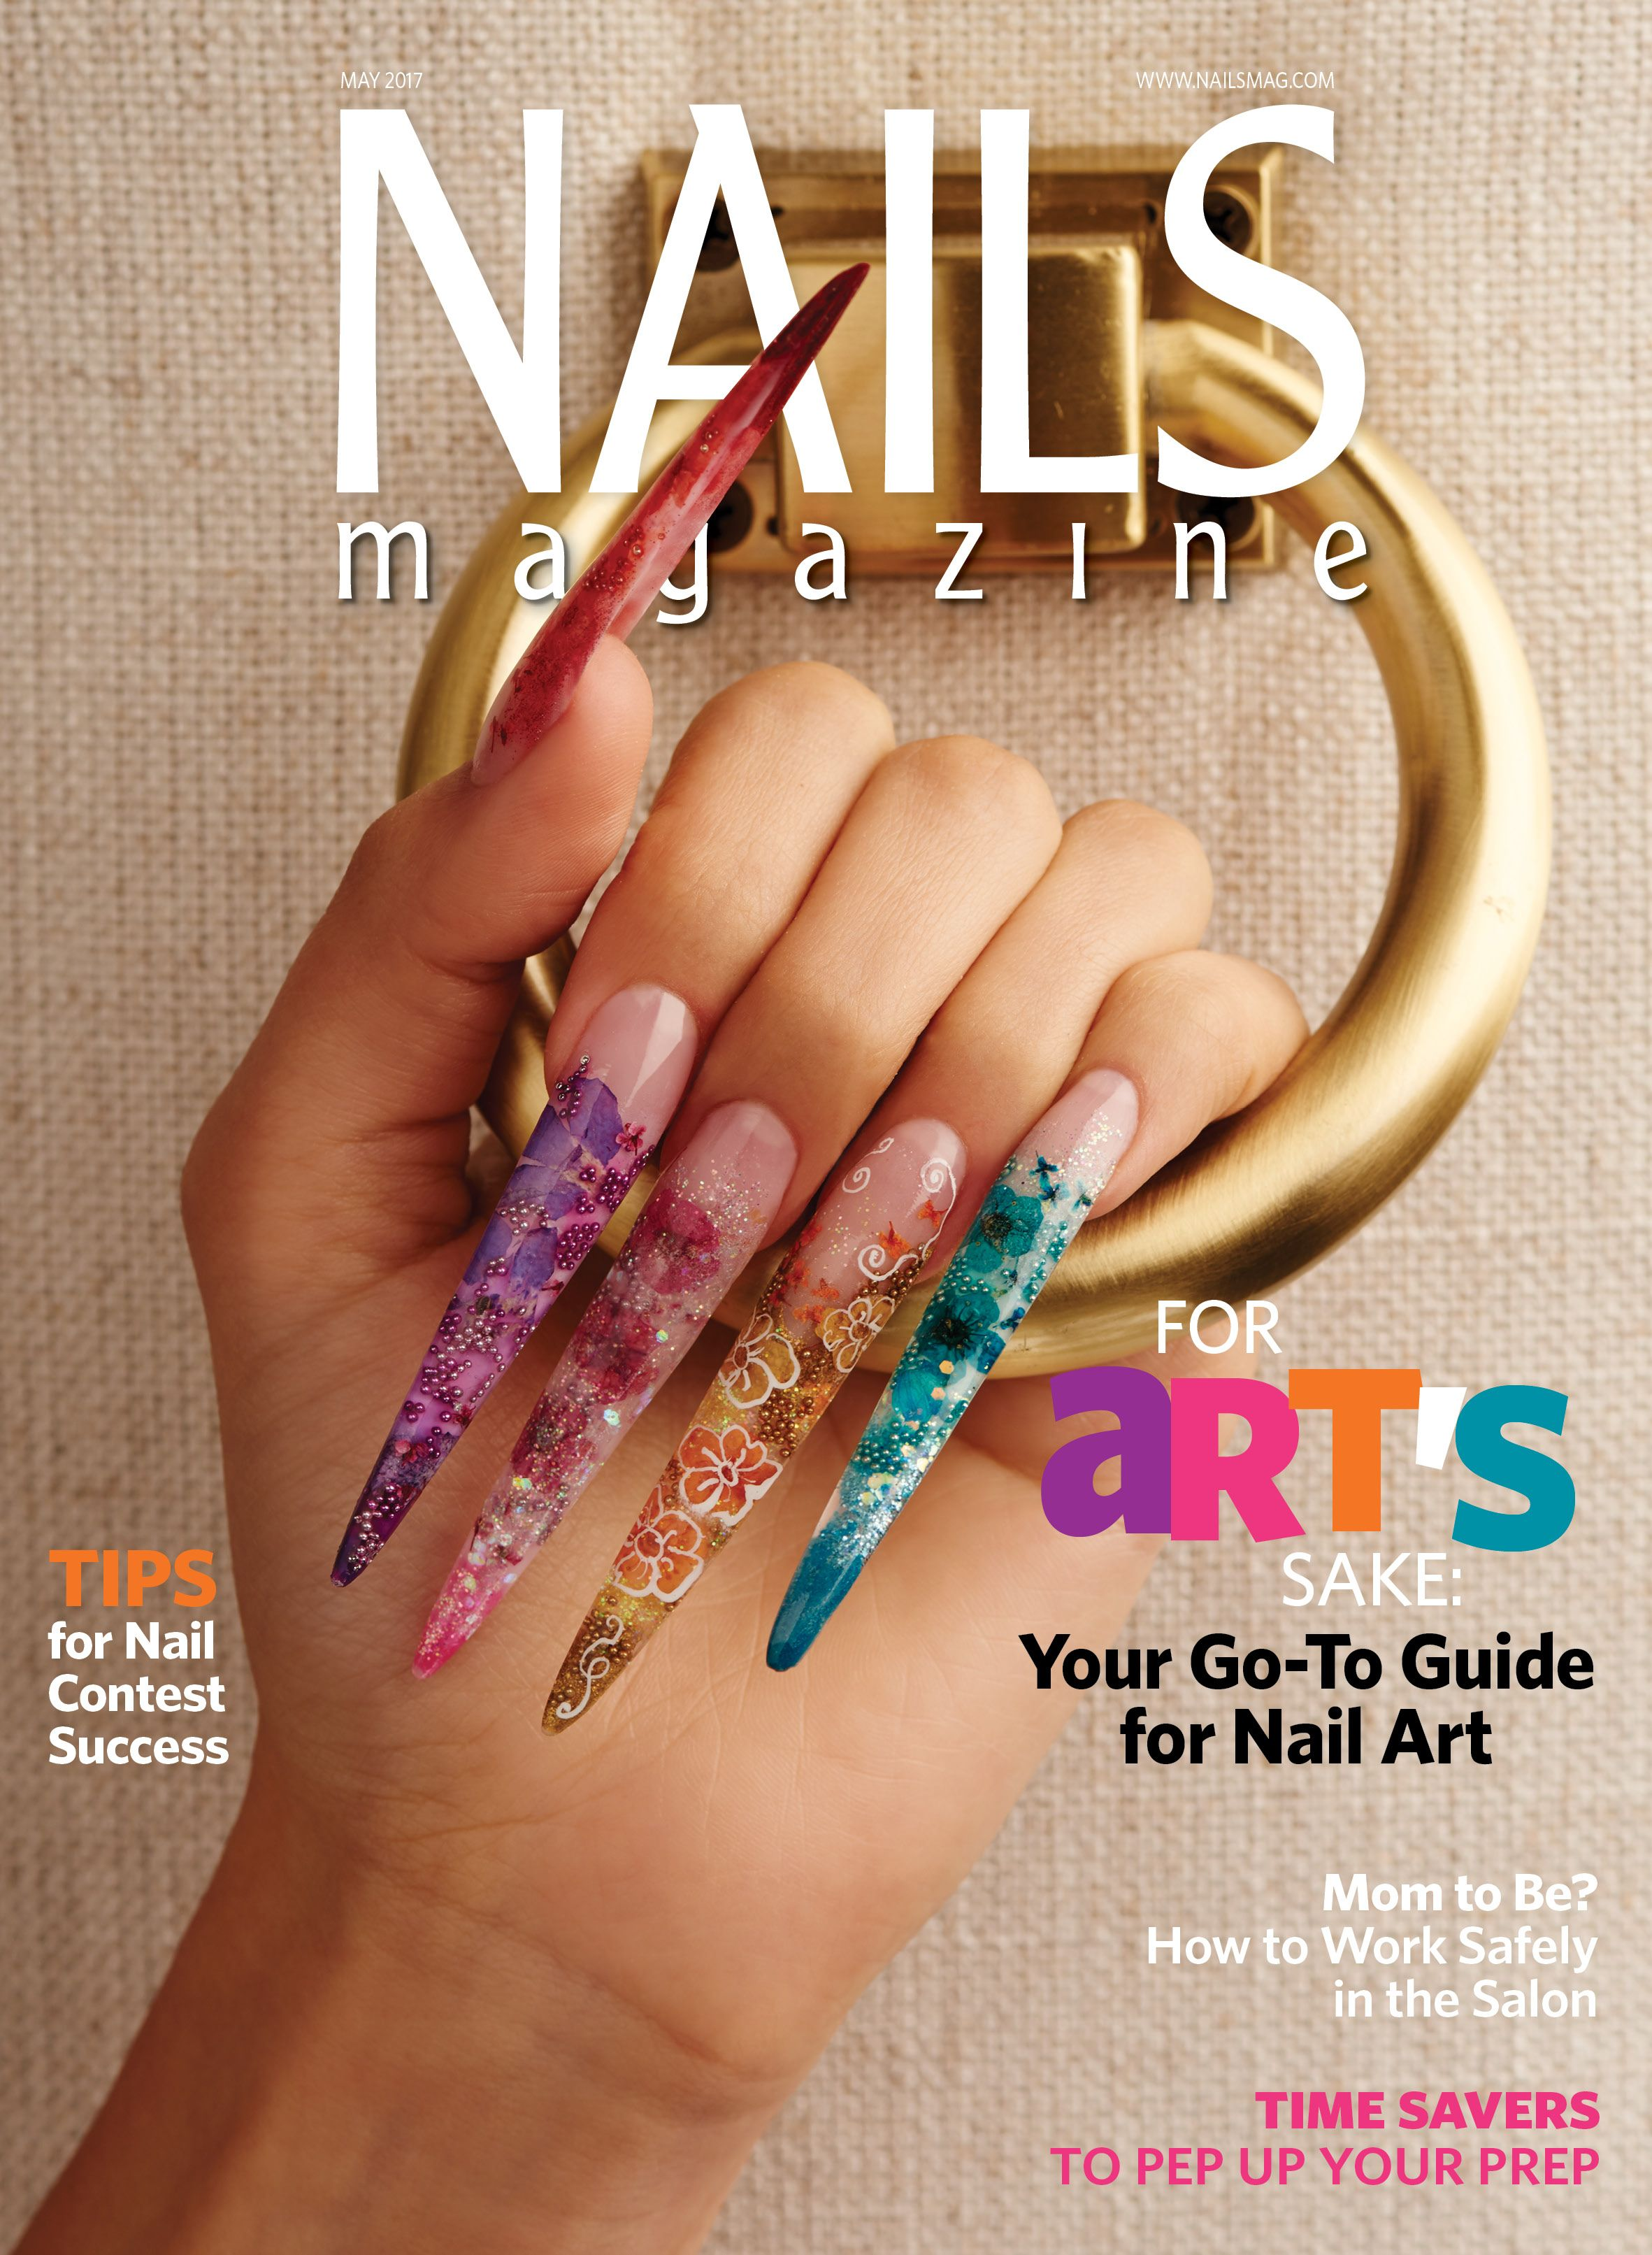 NAILS Magazine  May  Issue  NAILS Magazine  Pinterest  Nails